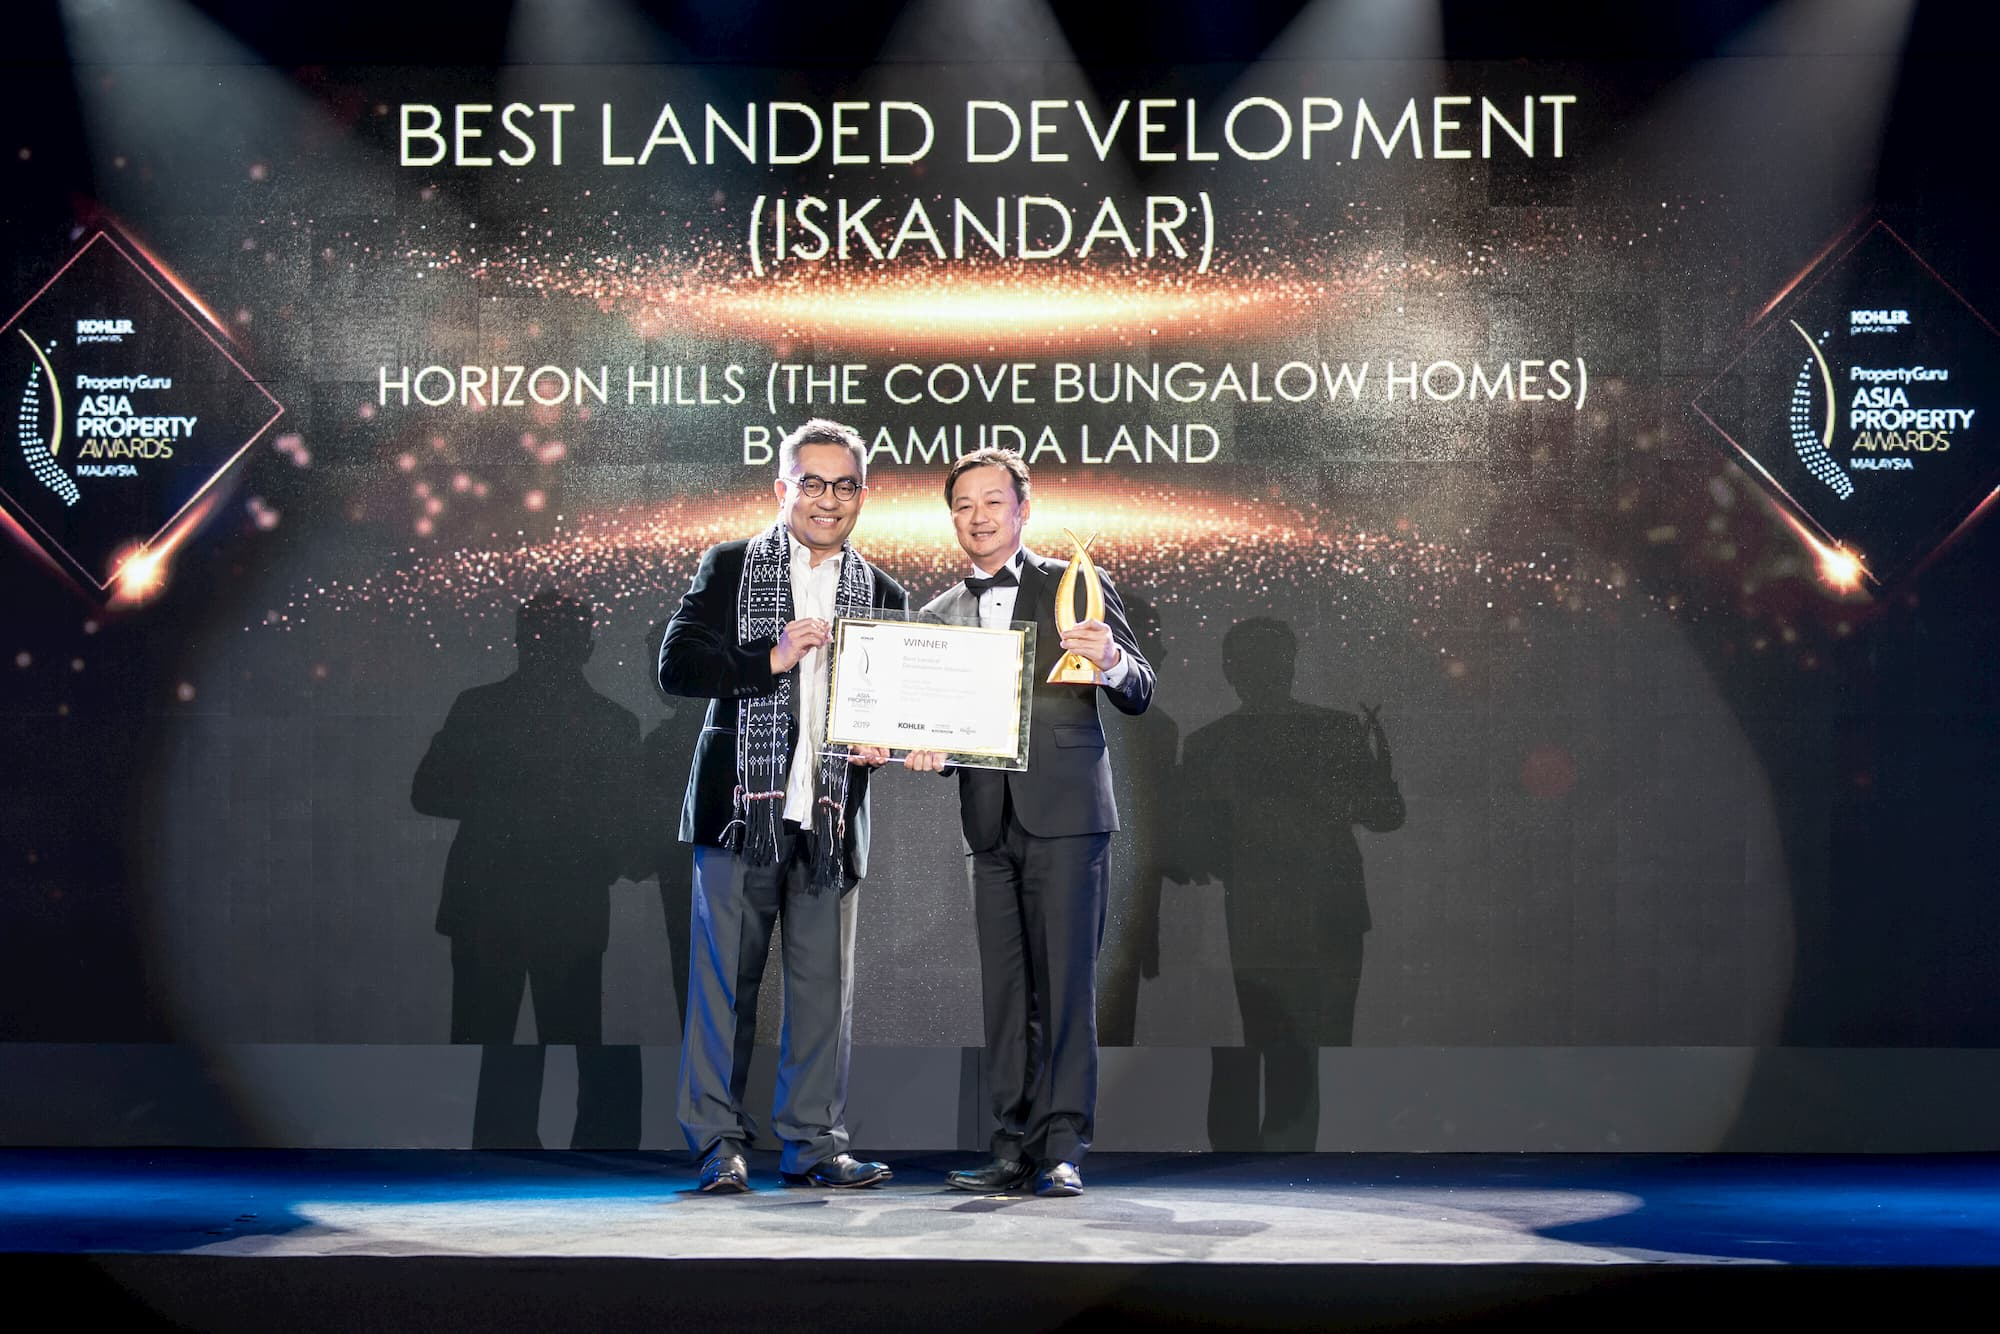 Best Landed Development Award